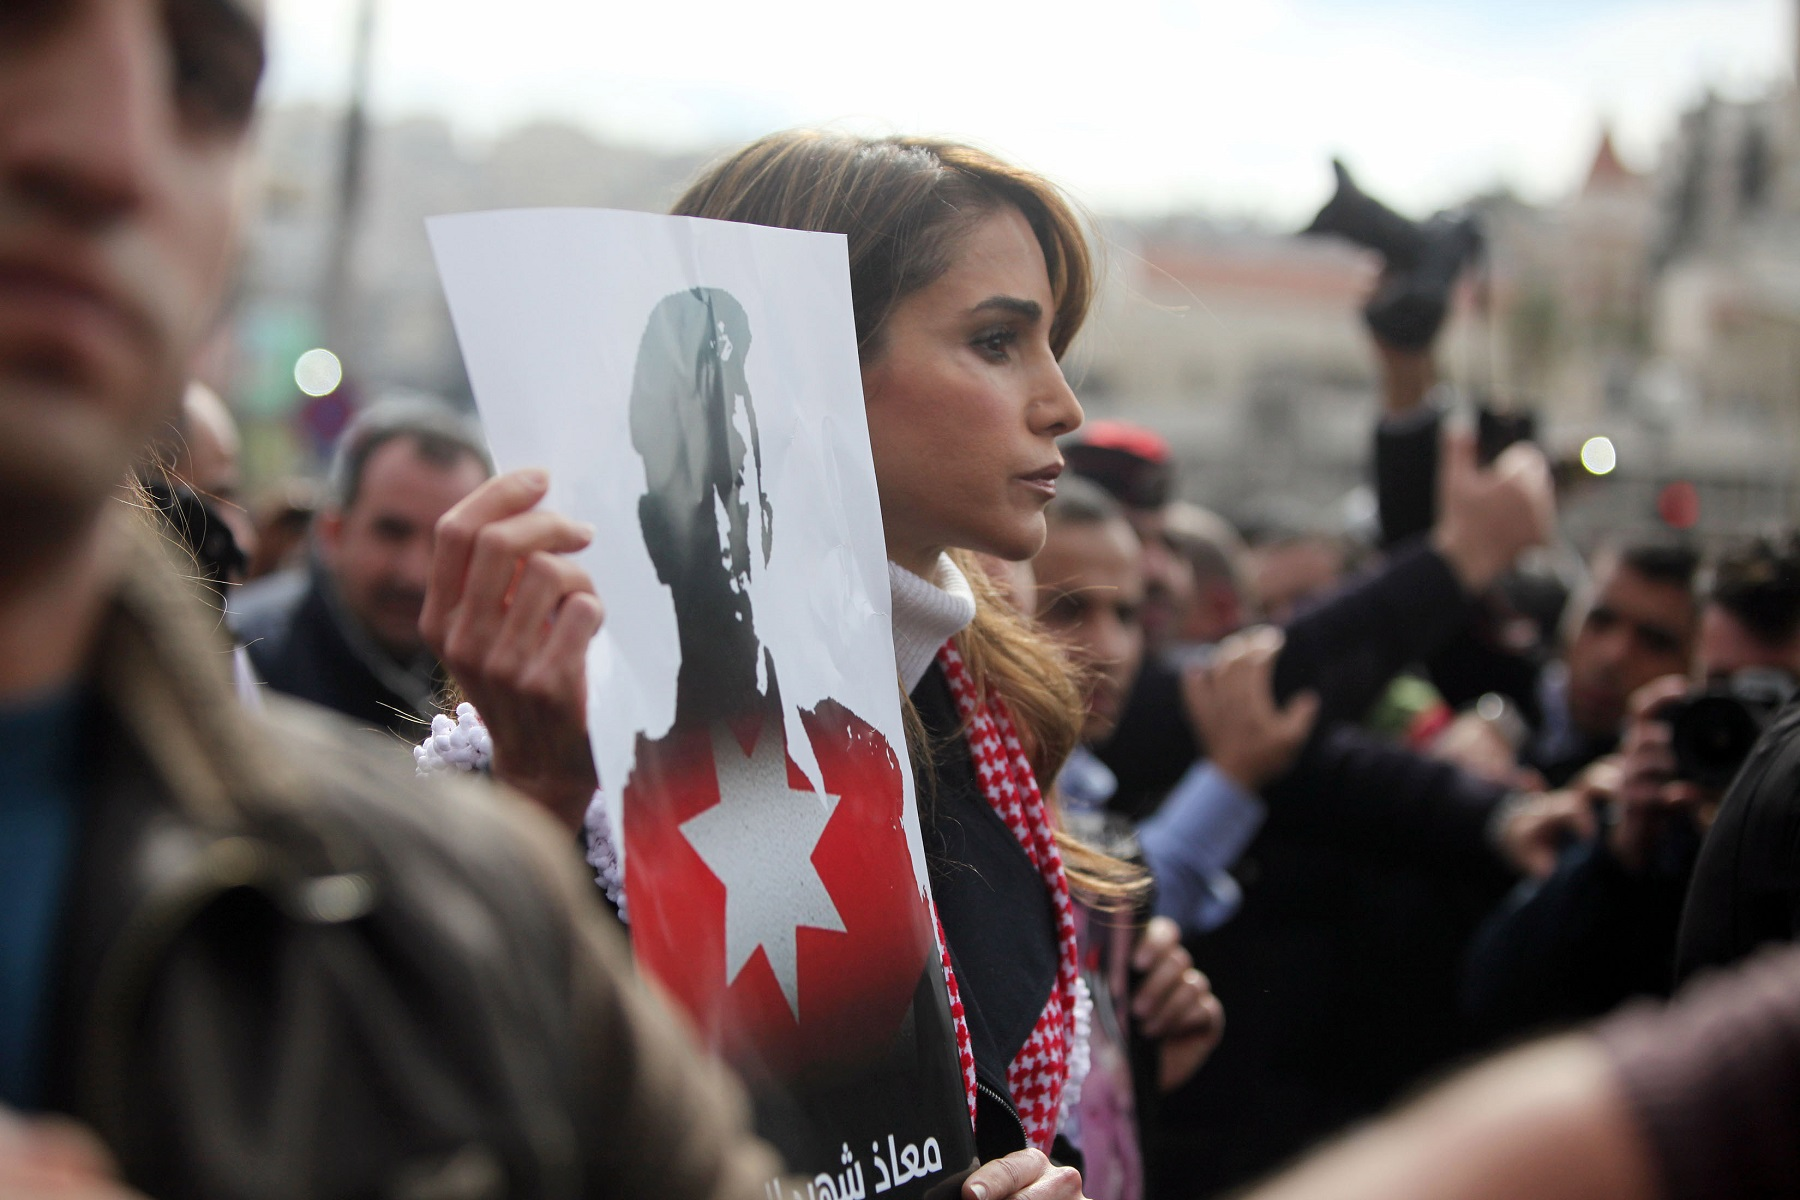 AMMAN, JORDAN- FEBRUARY 06:  Queen Rania of Jordan participates in a mass demonstration after Friday prayers near Al Hussein Mosque to express her solidarity with the pilot murdered by the Islamic State (IS) group earlier this week, on February 6, 2015 in Amman, Jordan. Muath al-Kasaesbeh was captured by the terror group after crashing his plane near Raqqa in northern Syria, during a mission against IS in December. (Photo by Jordan Pix/ Getty Images)